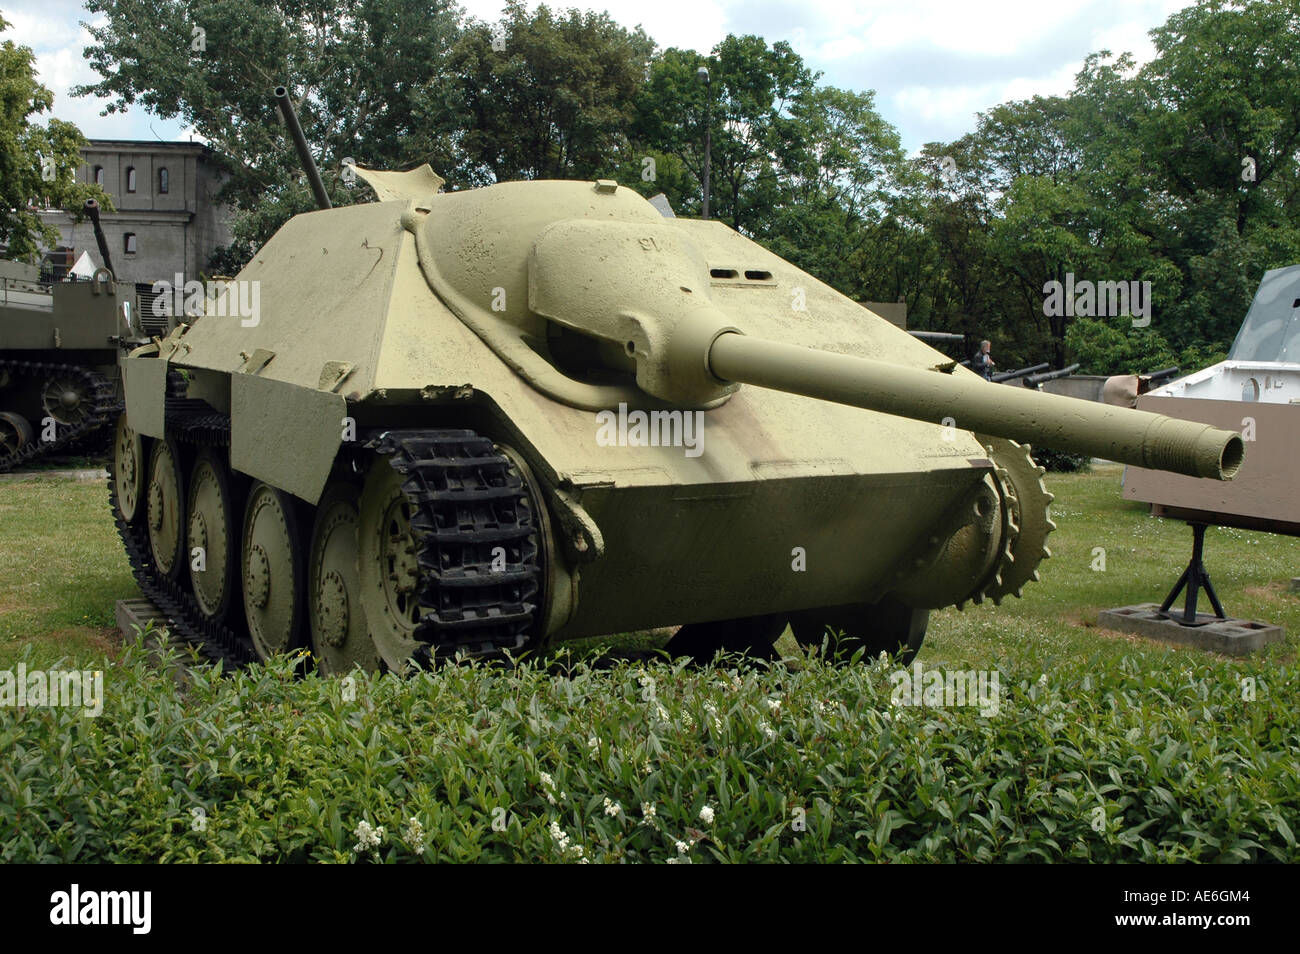 Self Propelled Cart >> German Jagdpanzer 38 hetzer self-propelled gun Stock Photo: 7762499 - Alamy